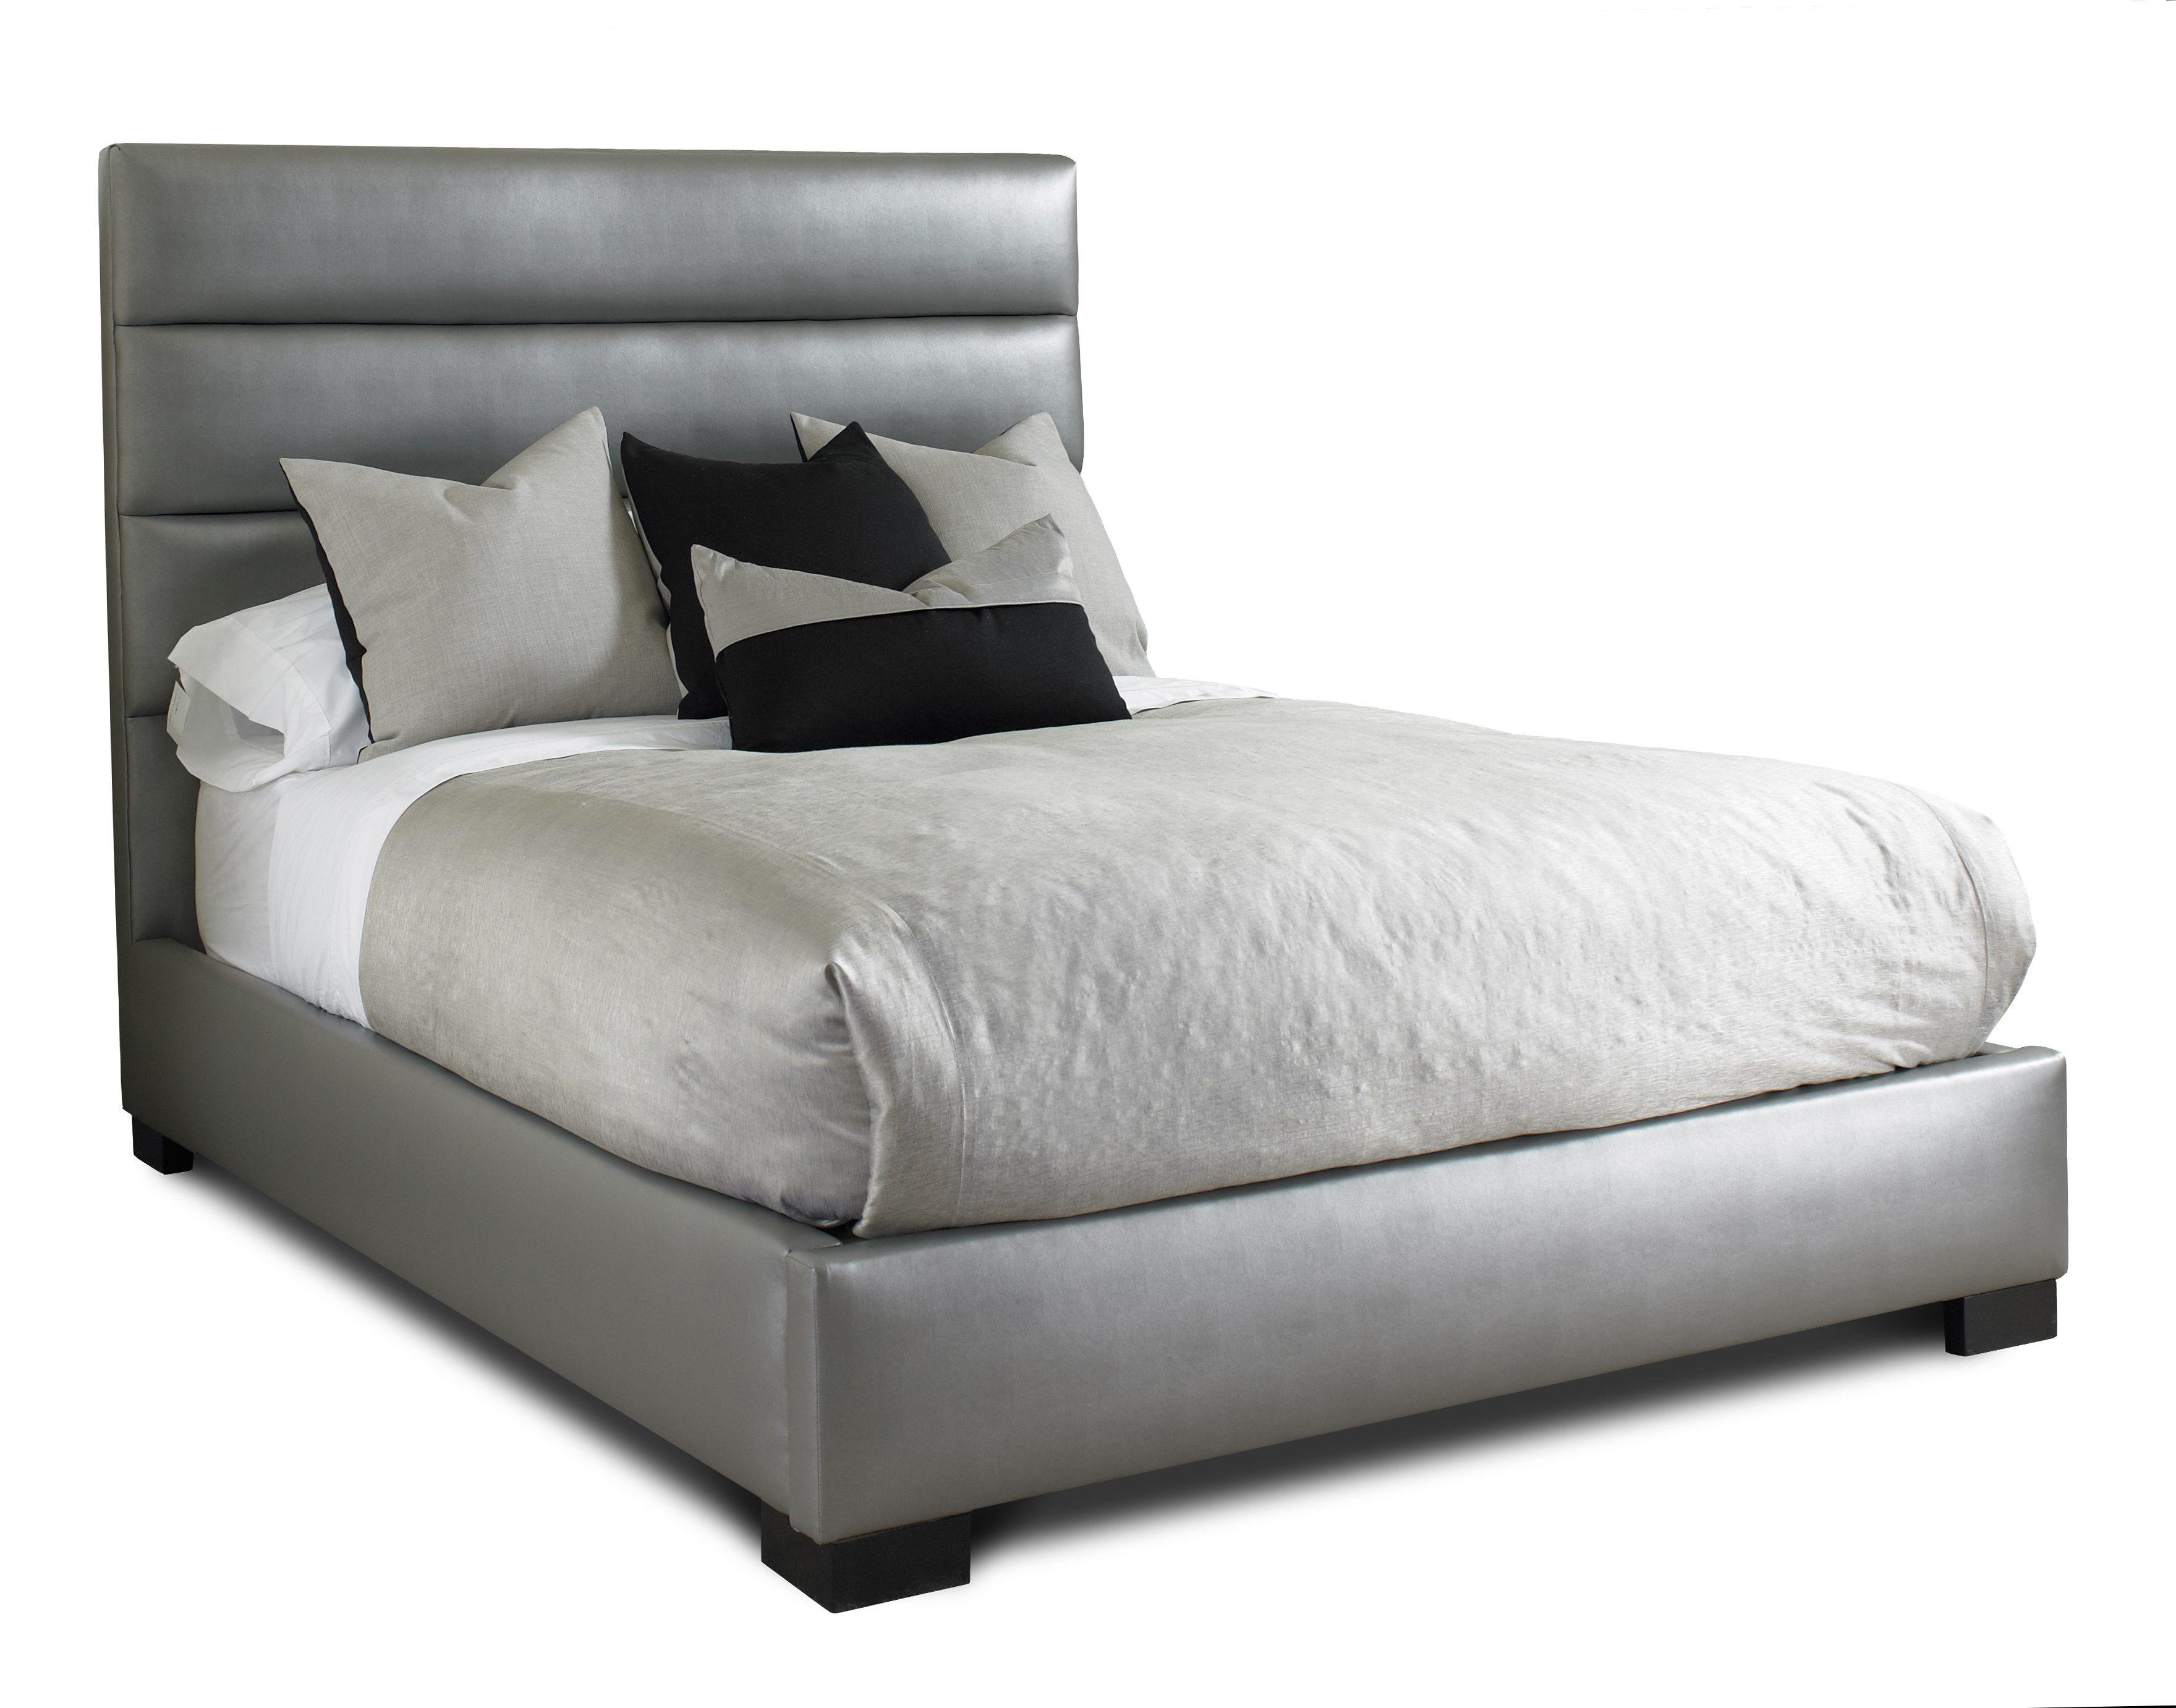 161 Qhr Beckett Queen Headboard And Rails